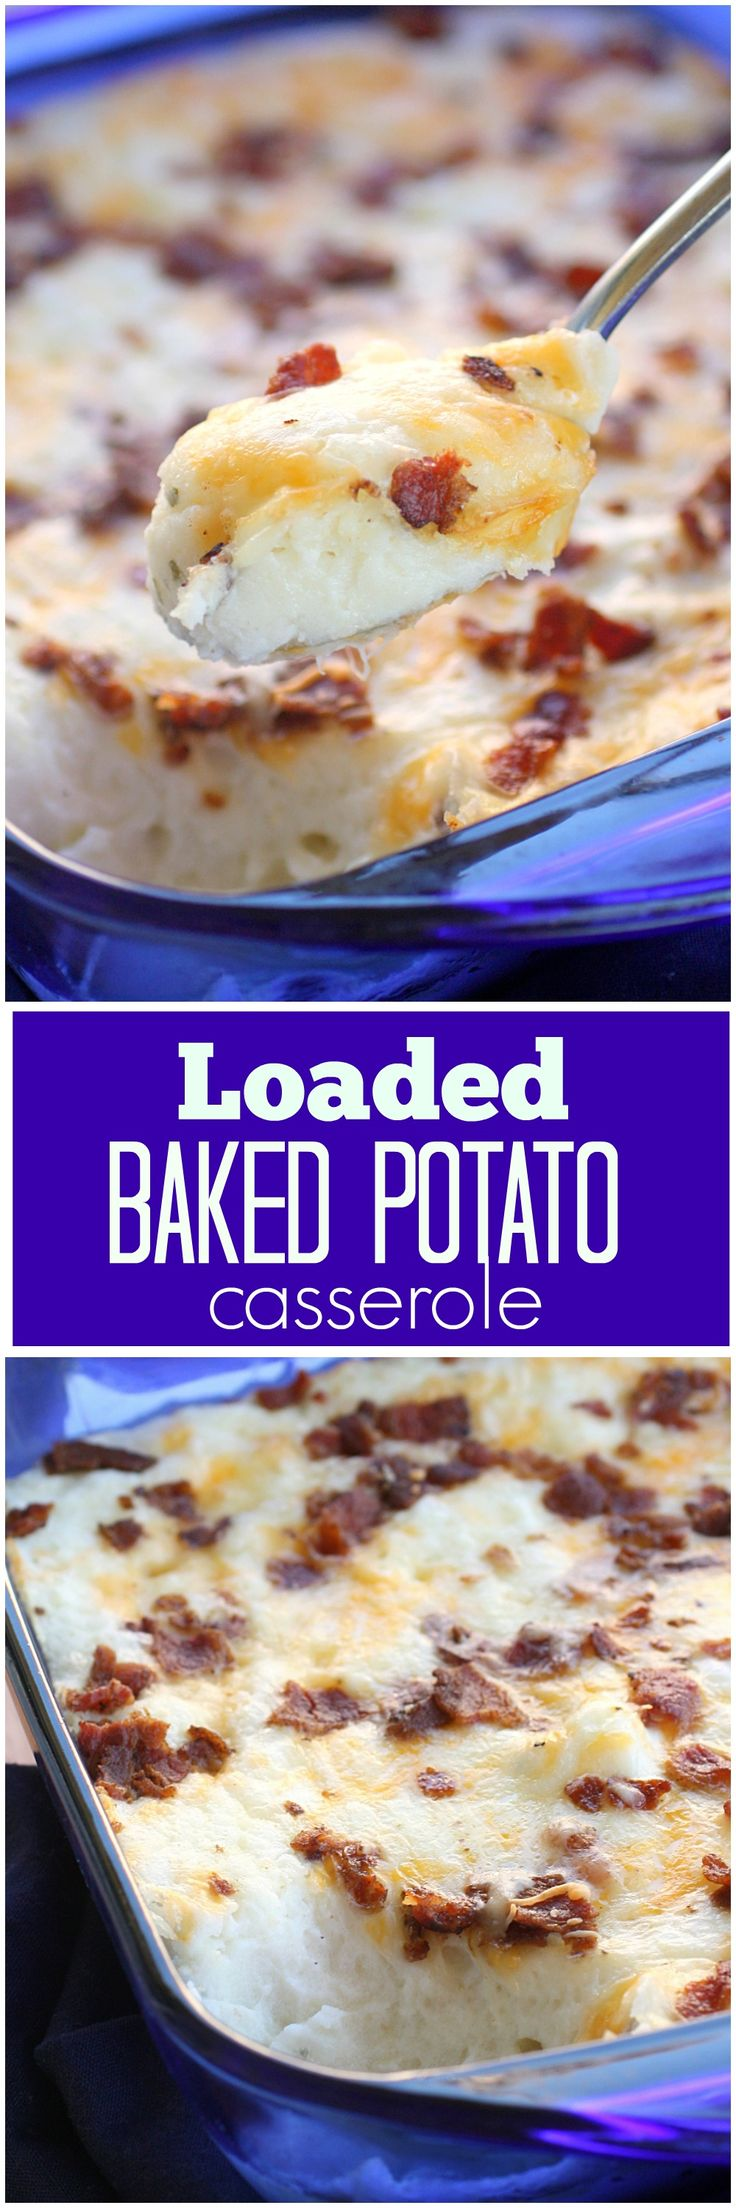 Loaded Baked Potato Casserole - creamy and full of everything you would find in a baked potato. the-girl-who-ate-everything.com